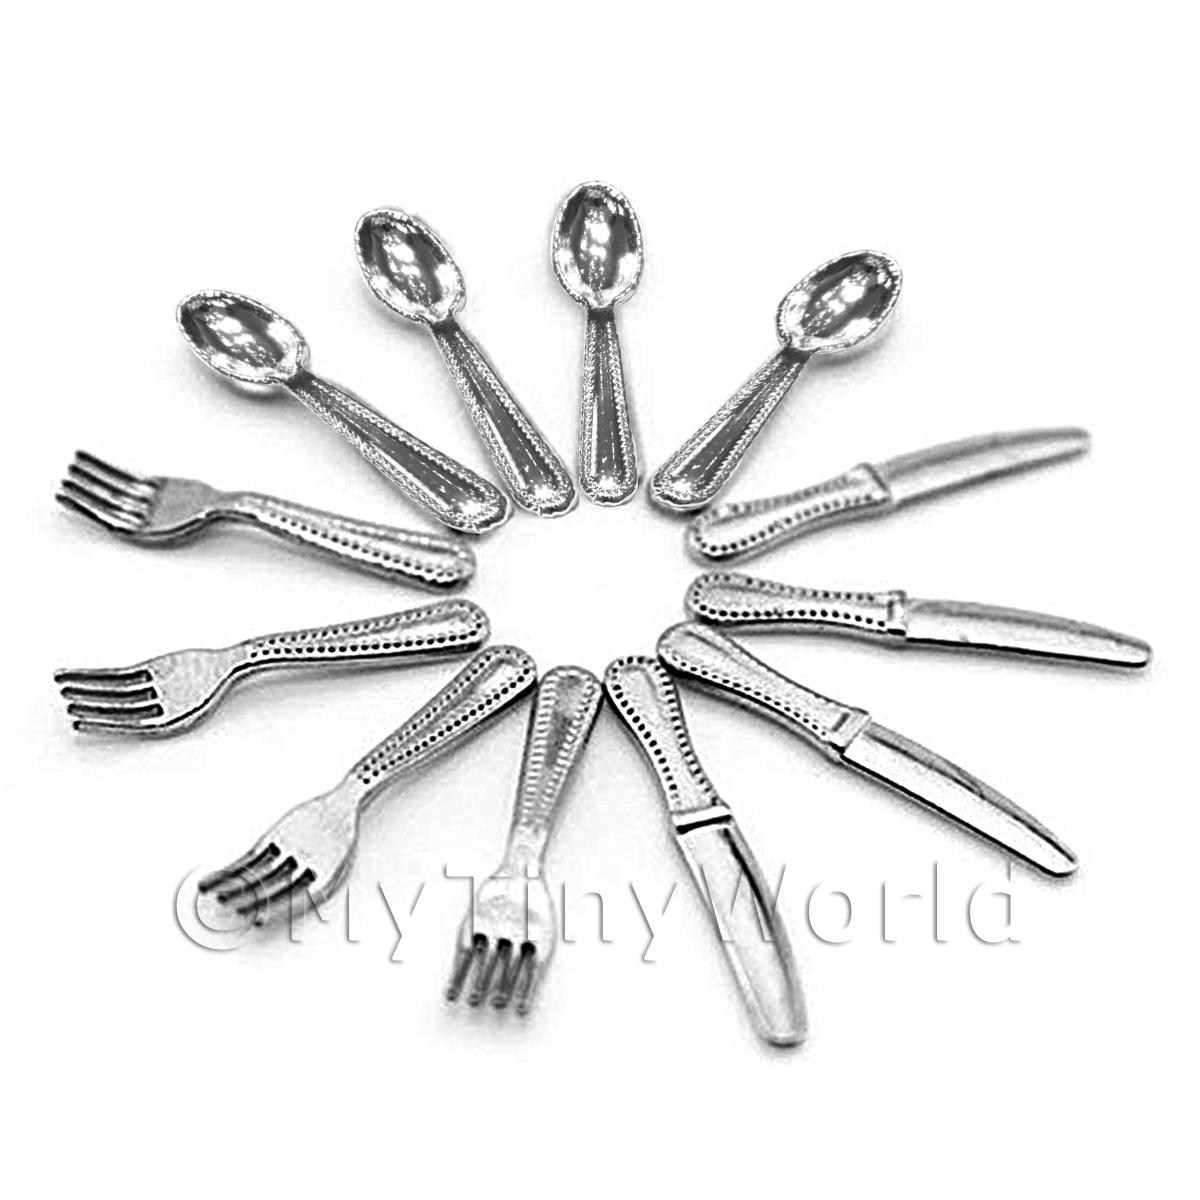 1/12 Scale Dolls House Miniatures  | 4 Complete Sets Of Dolls House Miniature Metal Cutlery - 12 Pieces